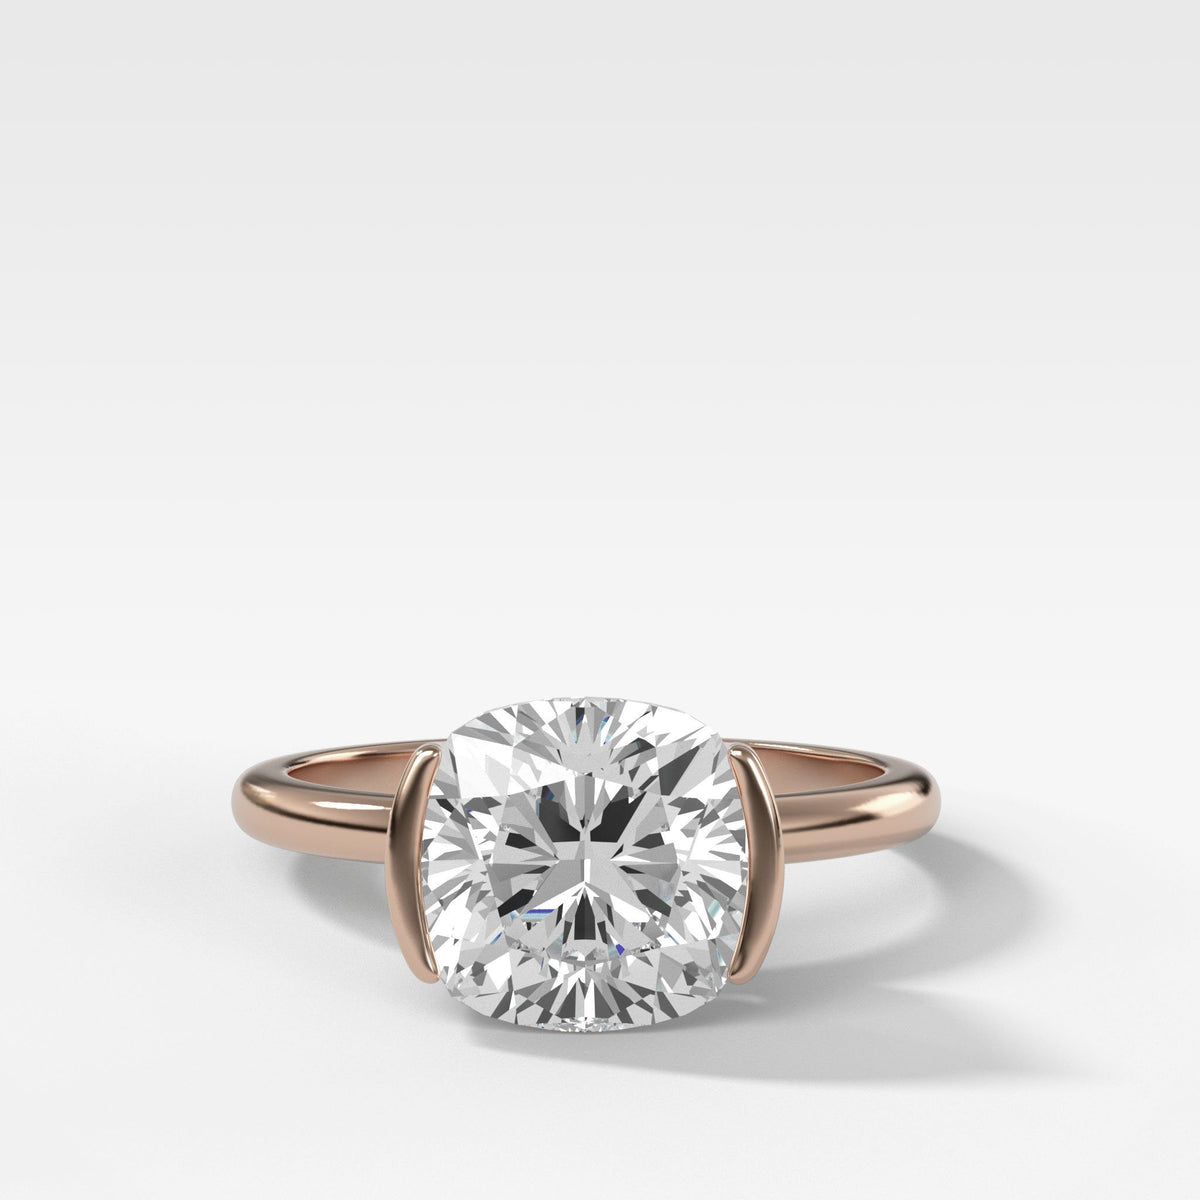 Half Bezel Solitaire Engagement Ring With Cushion Cut in Rose Gold by Good Stone